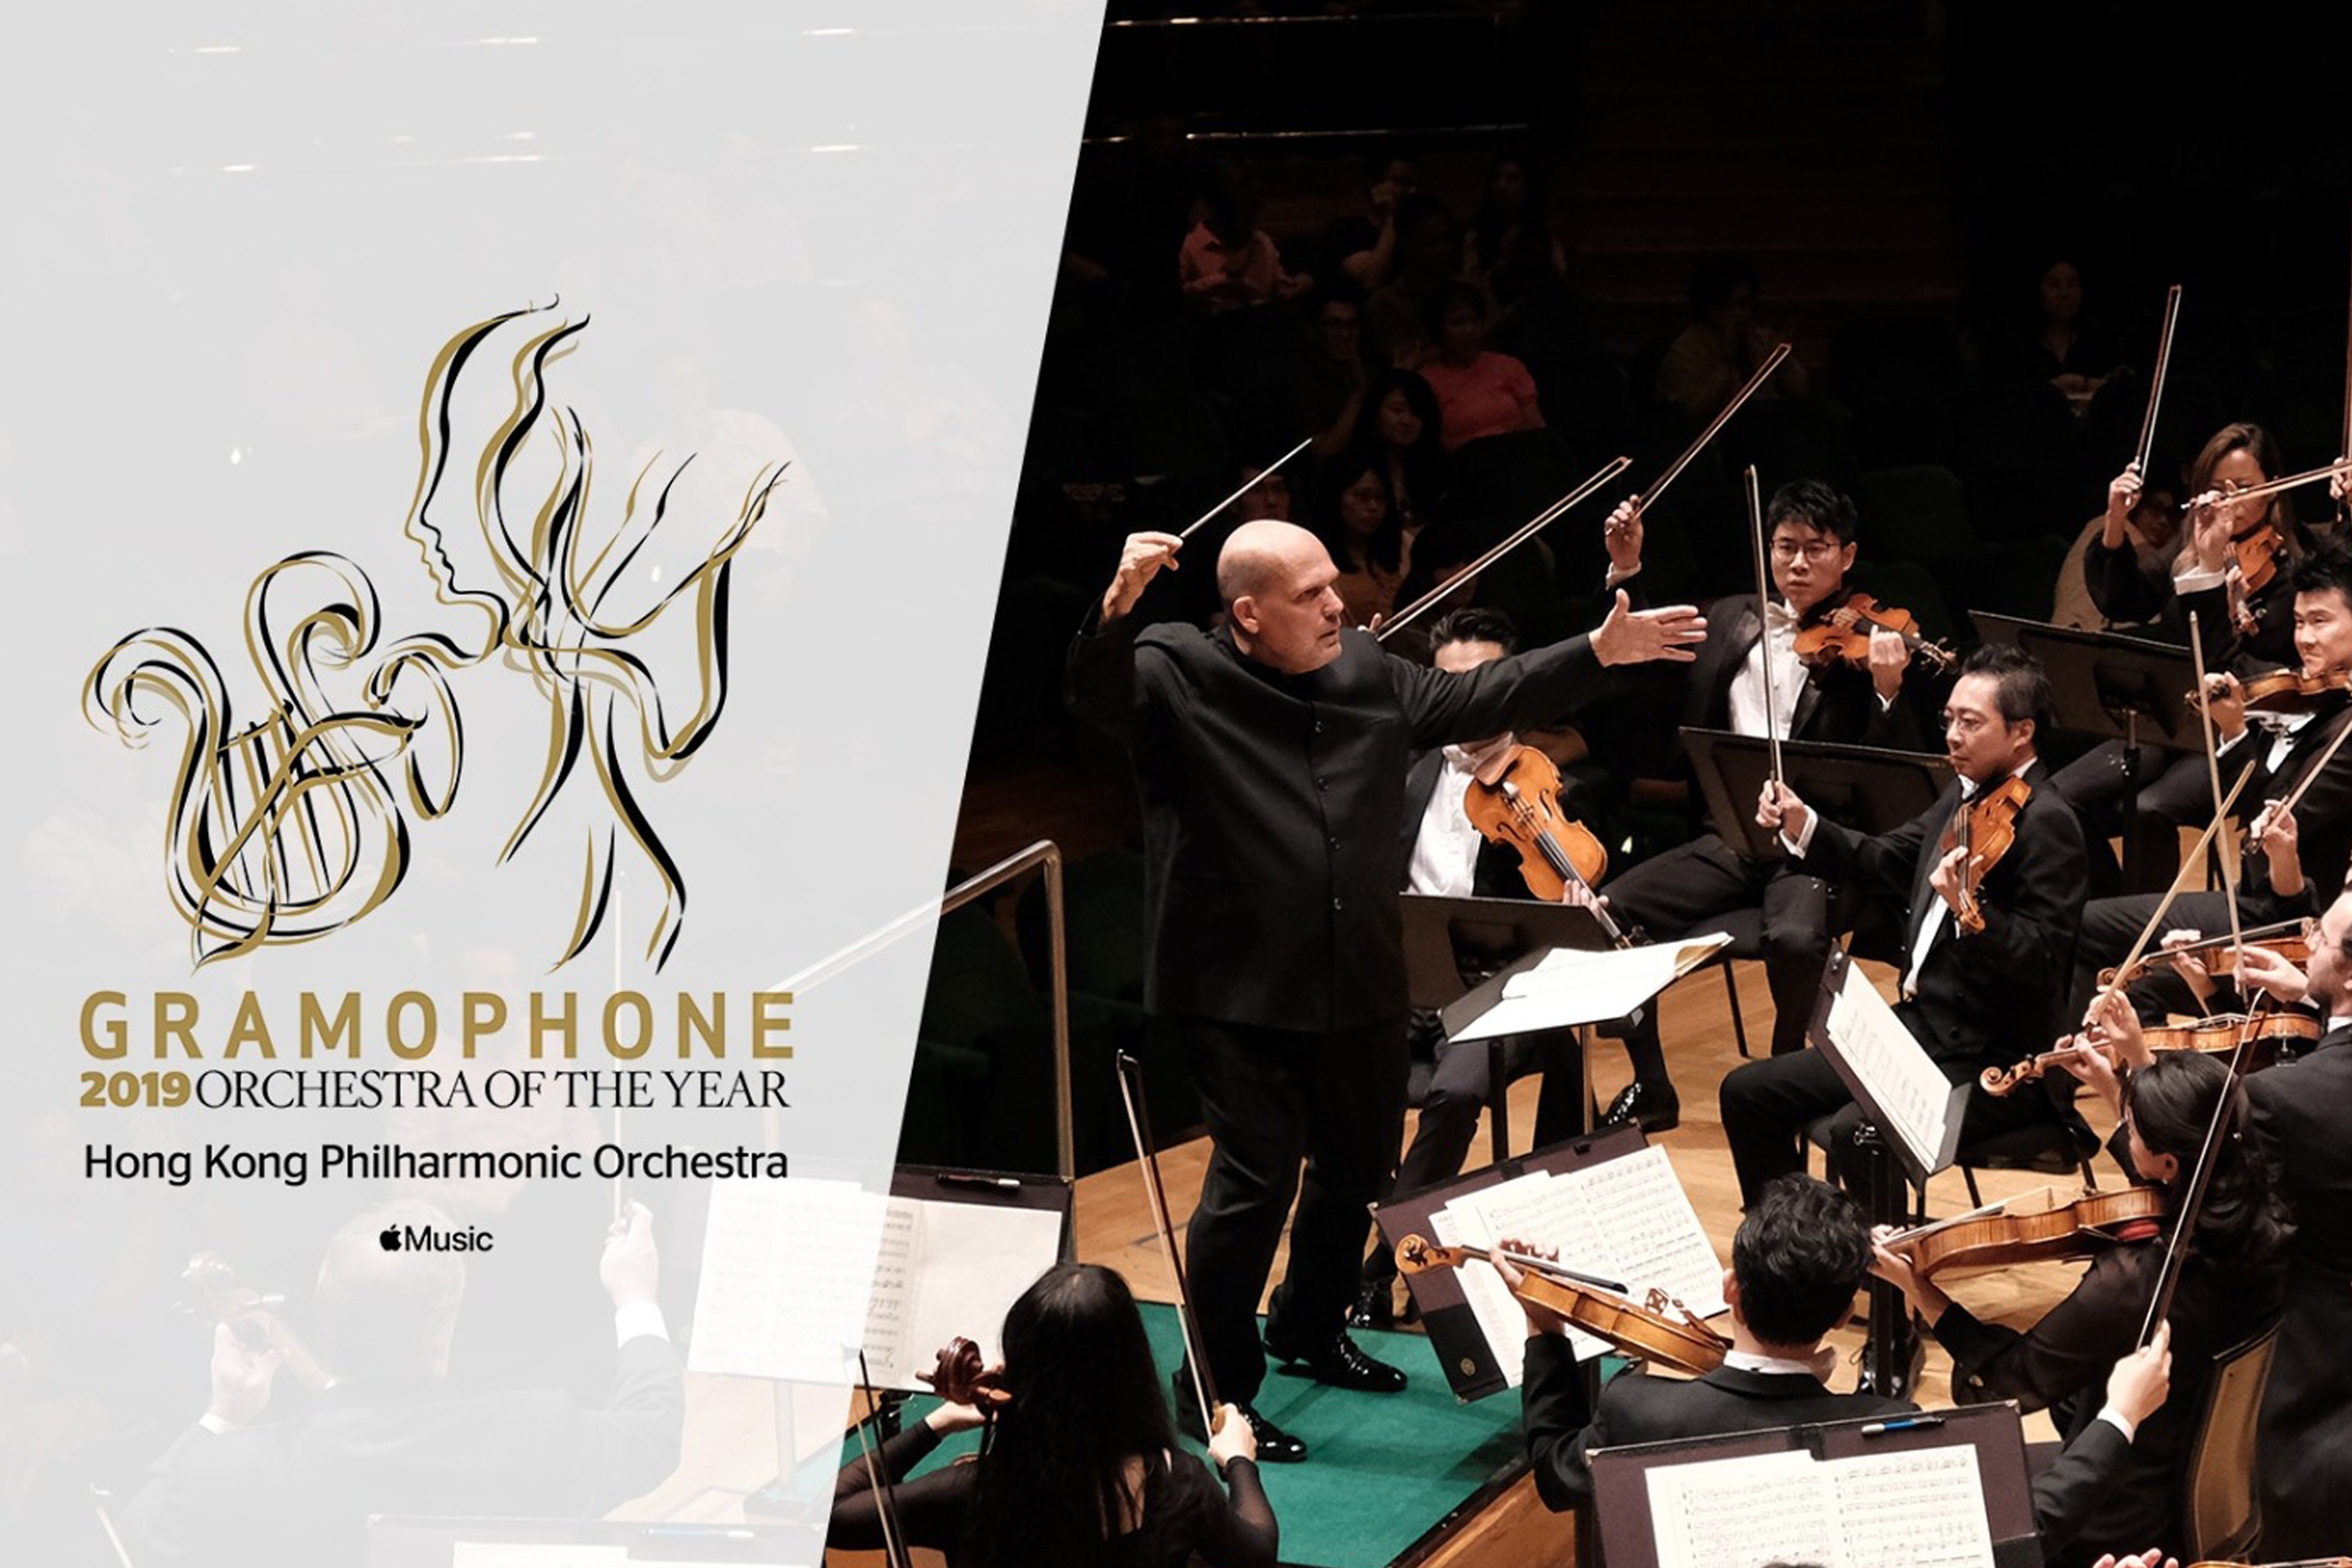 Gramophone Orchestra of the Year 2019 Award Supporters